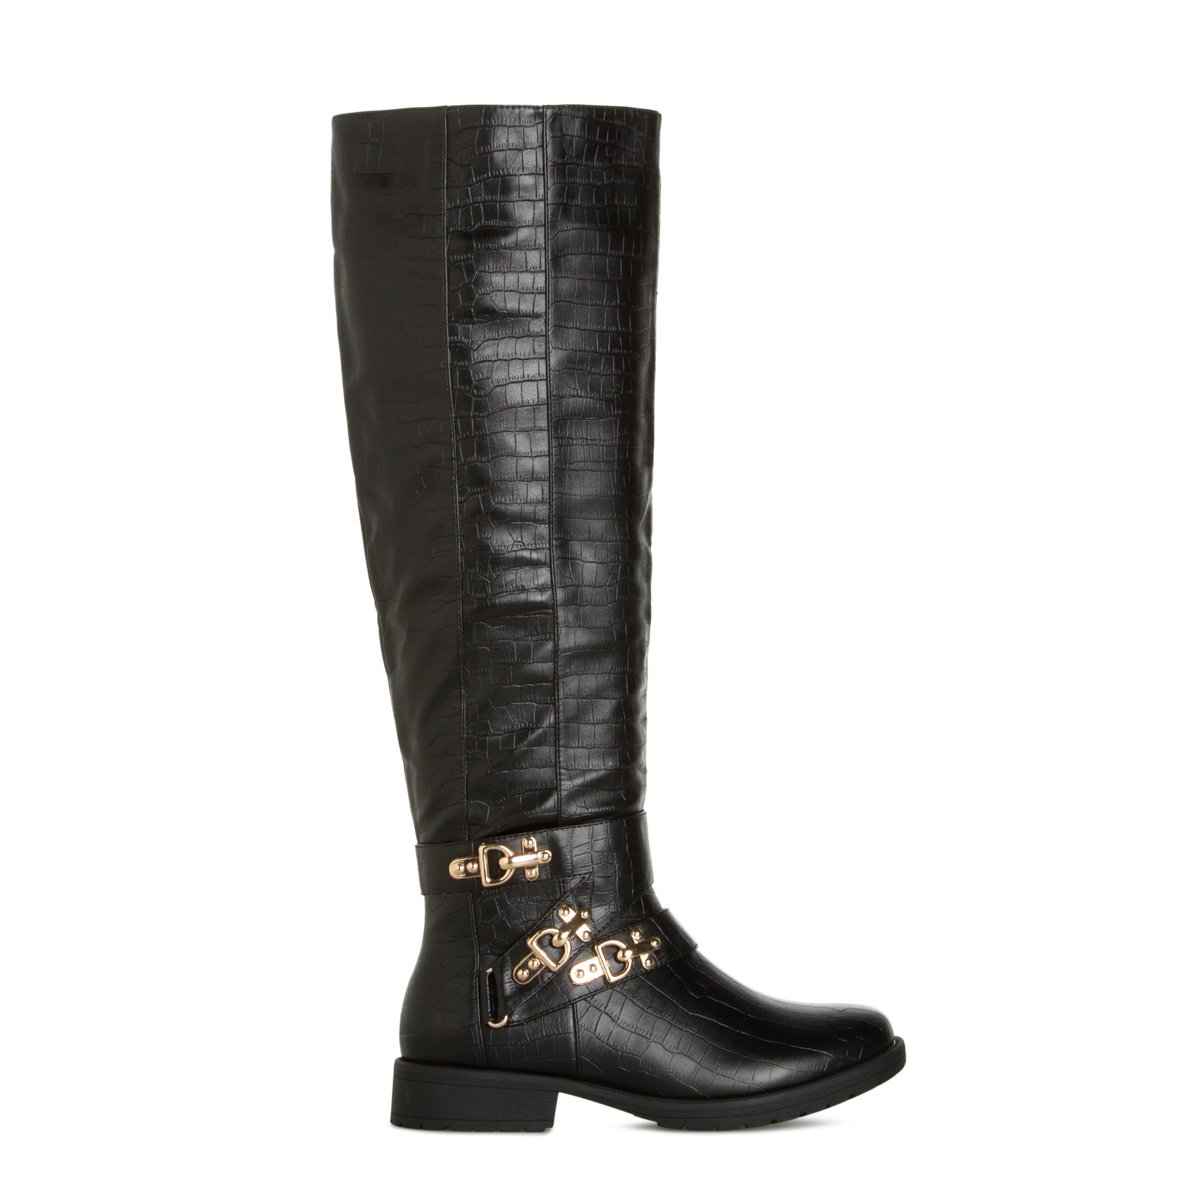 Women's Cowboy Boots, Black Riding Boots, Cheap Knee High Boots ...